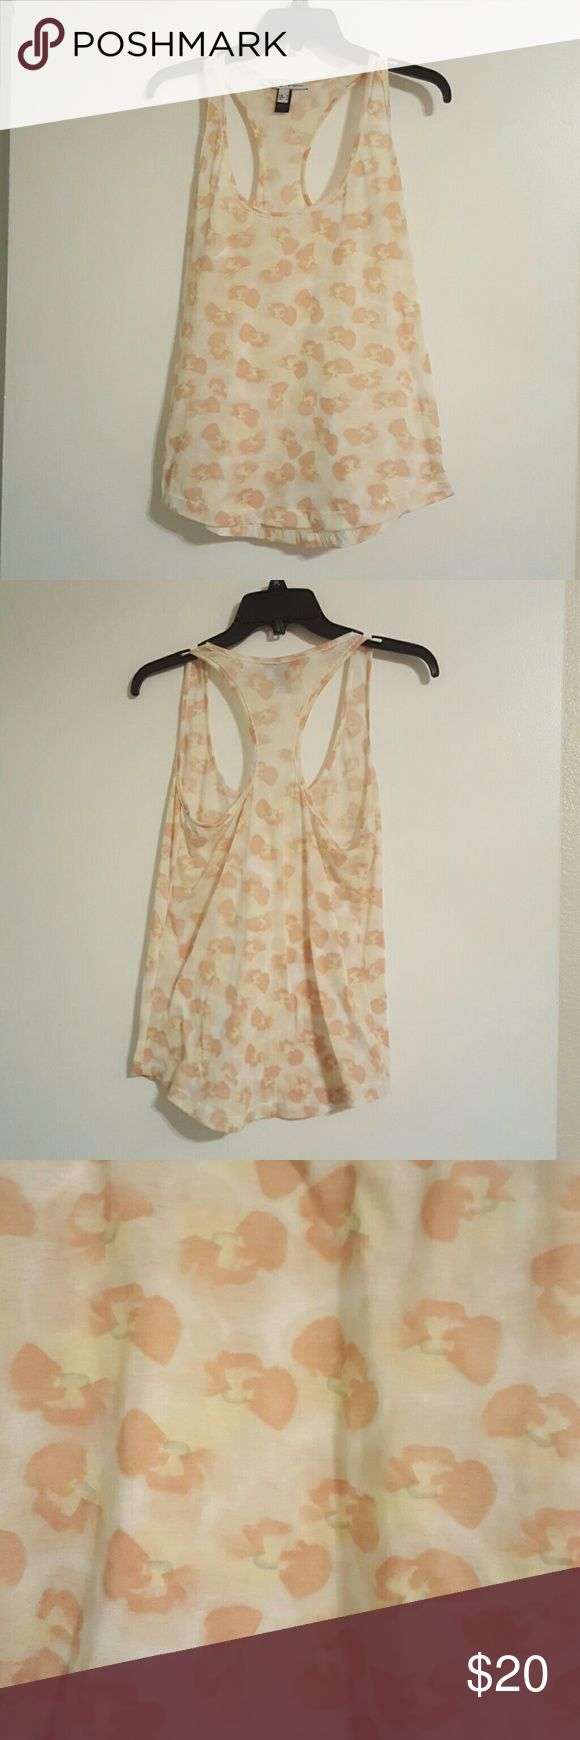 Floral tank top from MNG By Mango Sheer floral tank top in LIKE NEW condition. Size Small. Looks great alone or layered :) MNG by Mango Tops Tank Tops